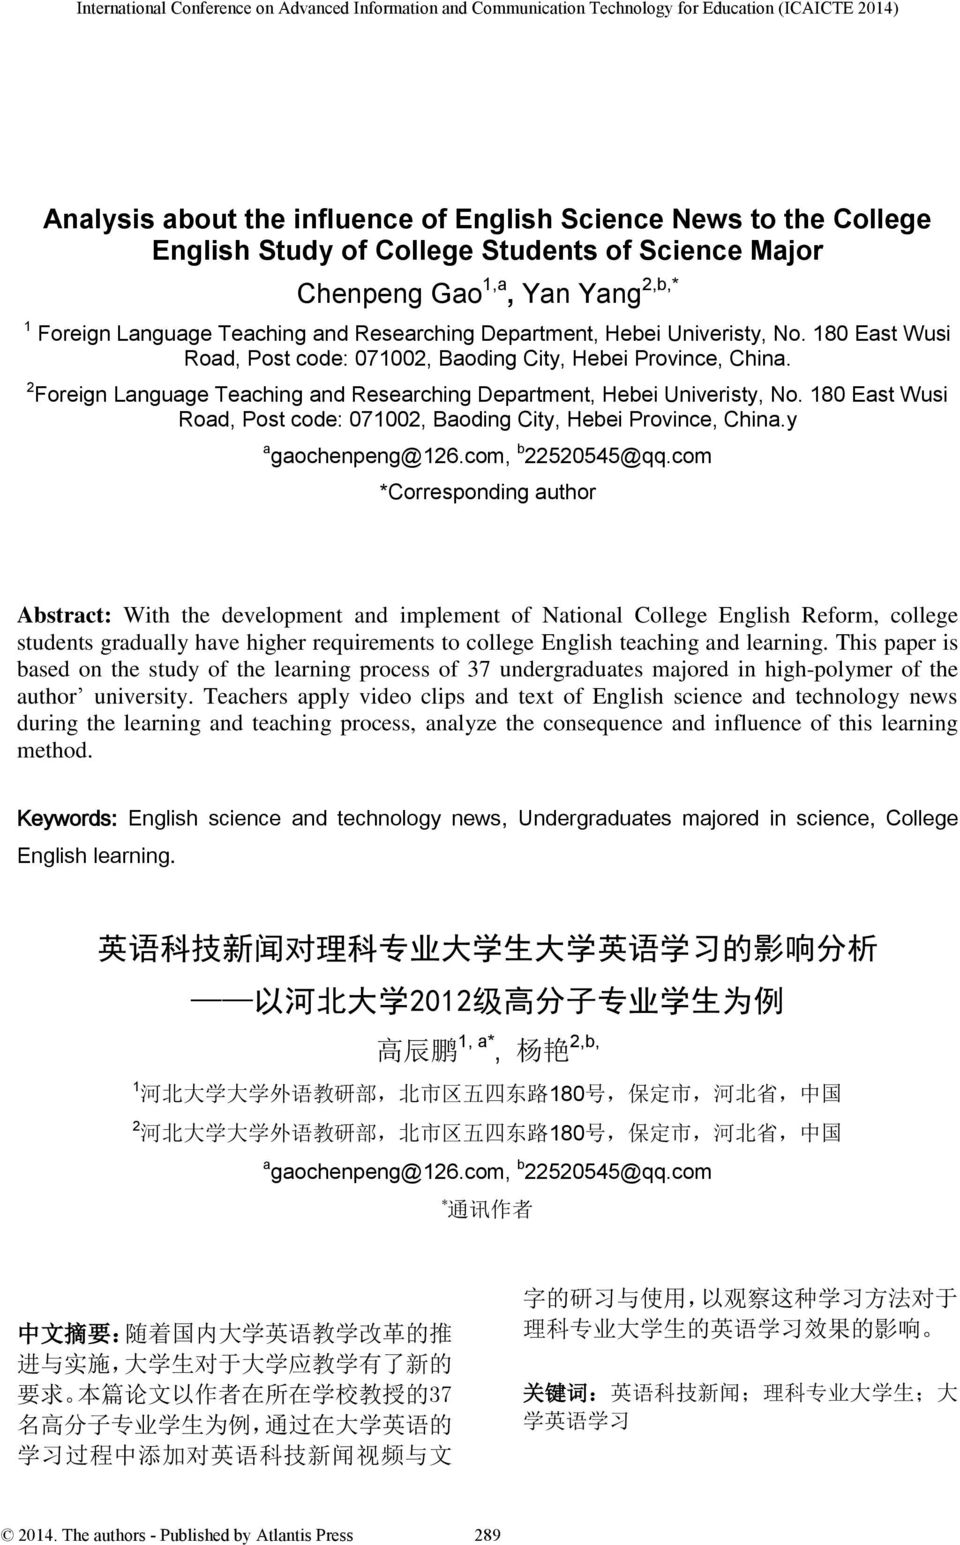 180 East Wusi Road, Post code: 071002, Baoding City, Hebei Province, China. 2 Foreign Language Teaching and Researching Department, Hebei Univeristy, No.